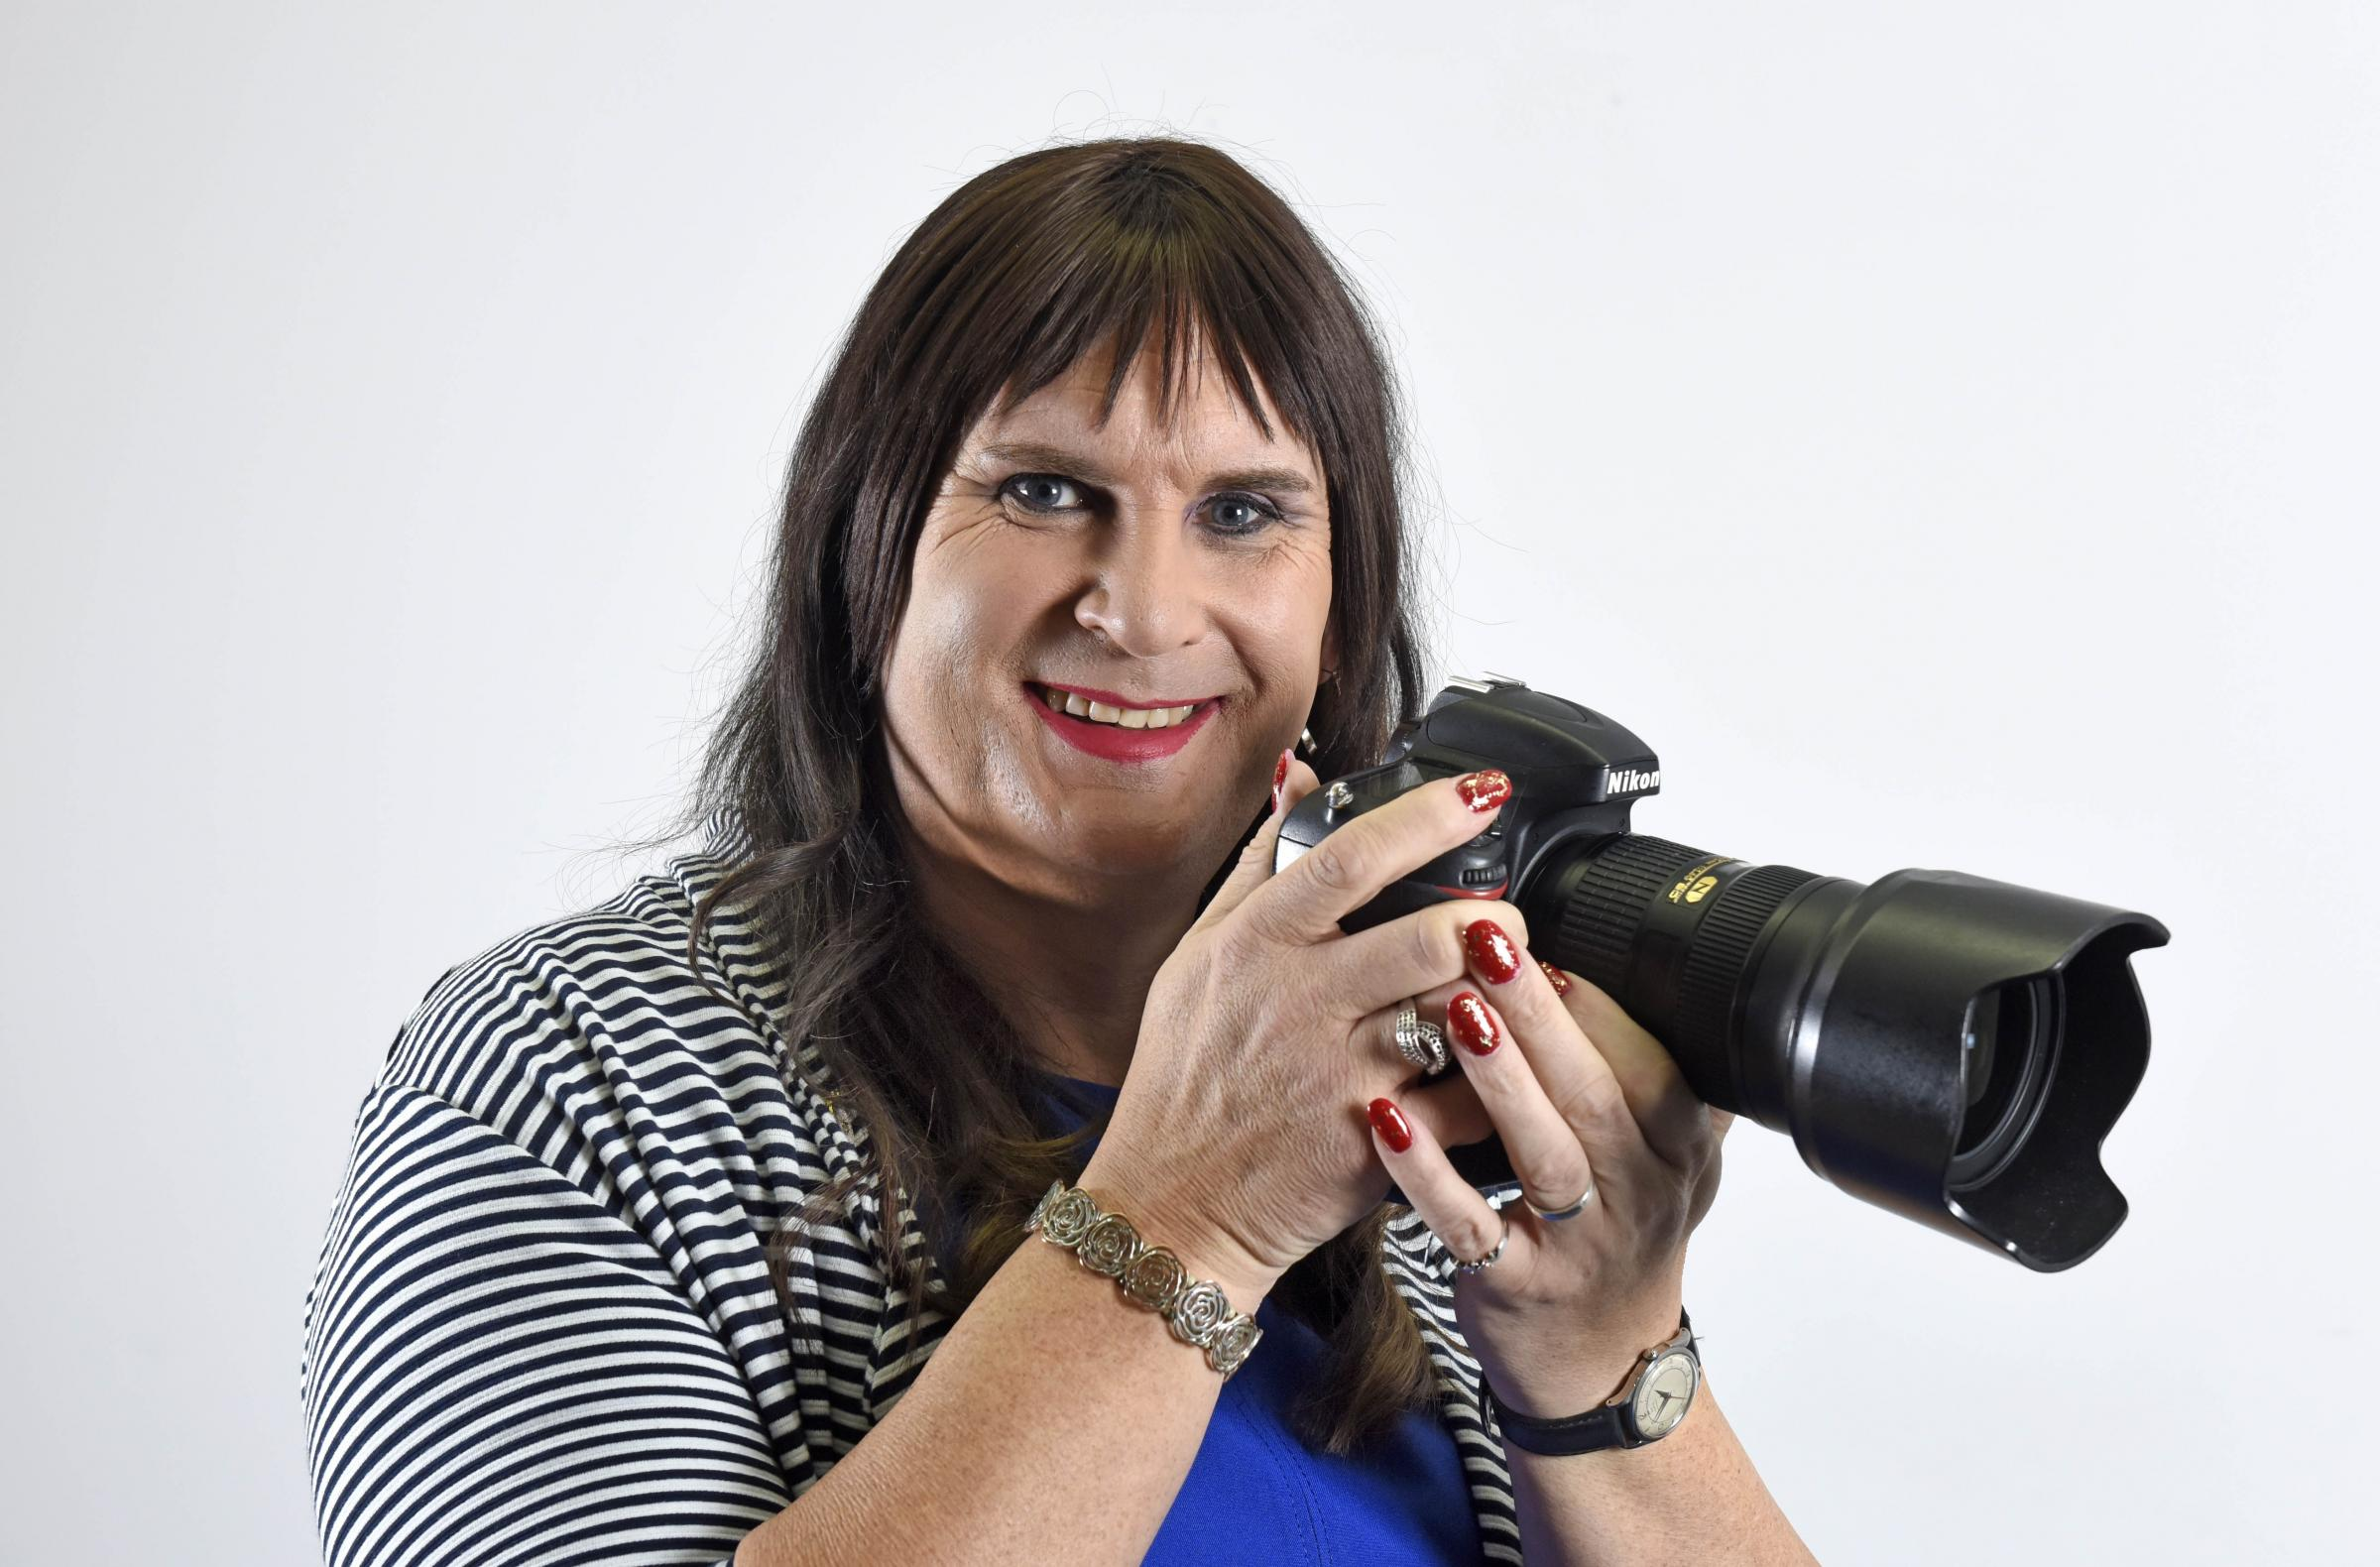 Sophie Cook, the first transgender woman in the Premier League, is up for a national diversity award Picture: Simon Czapp/Solent News and Photo Agency